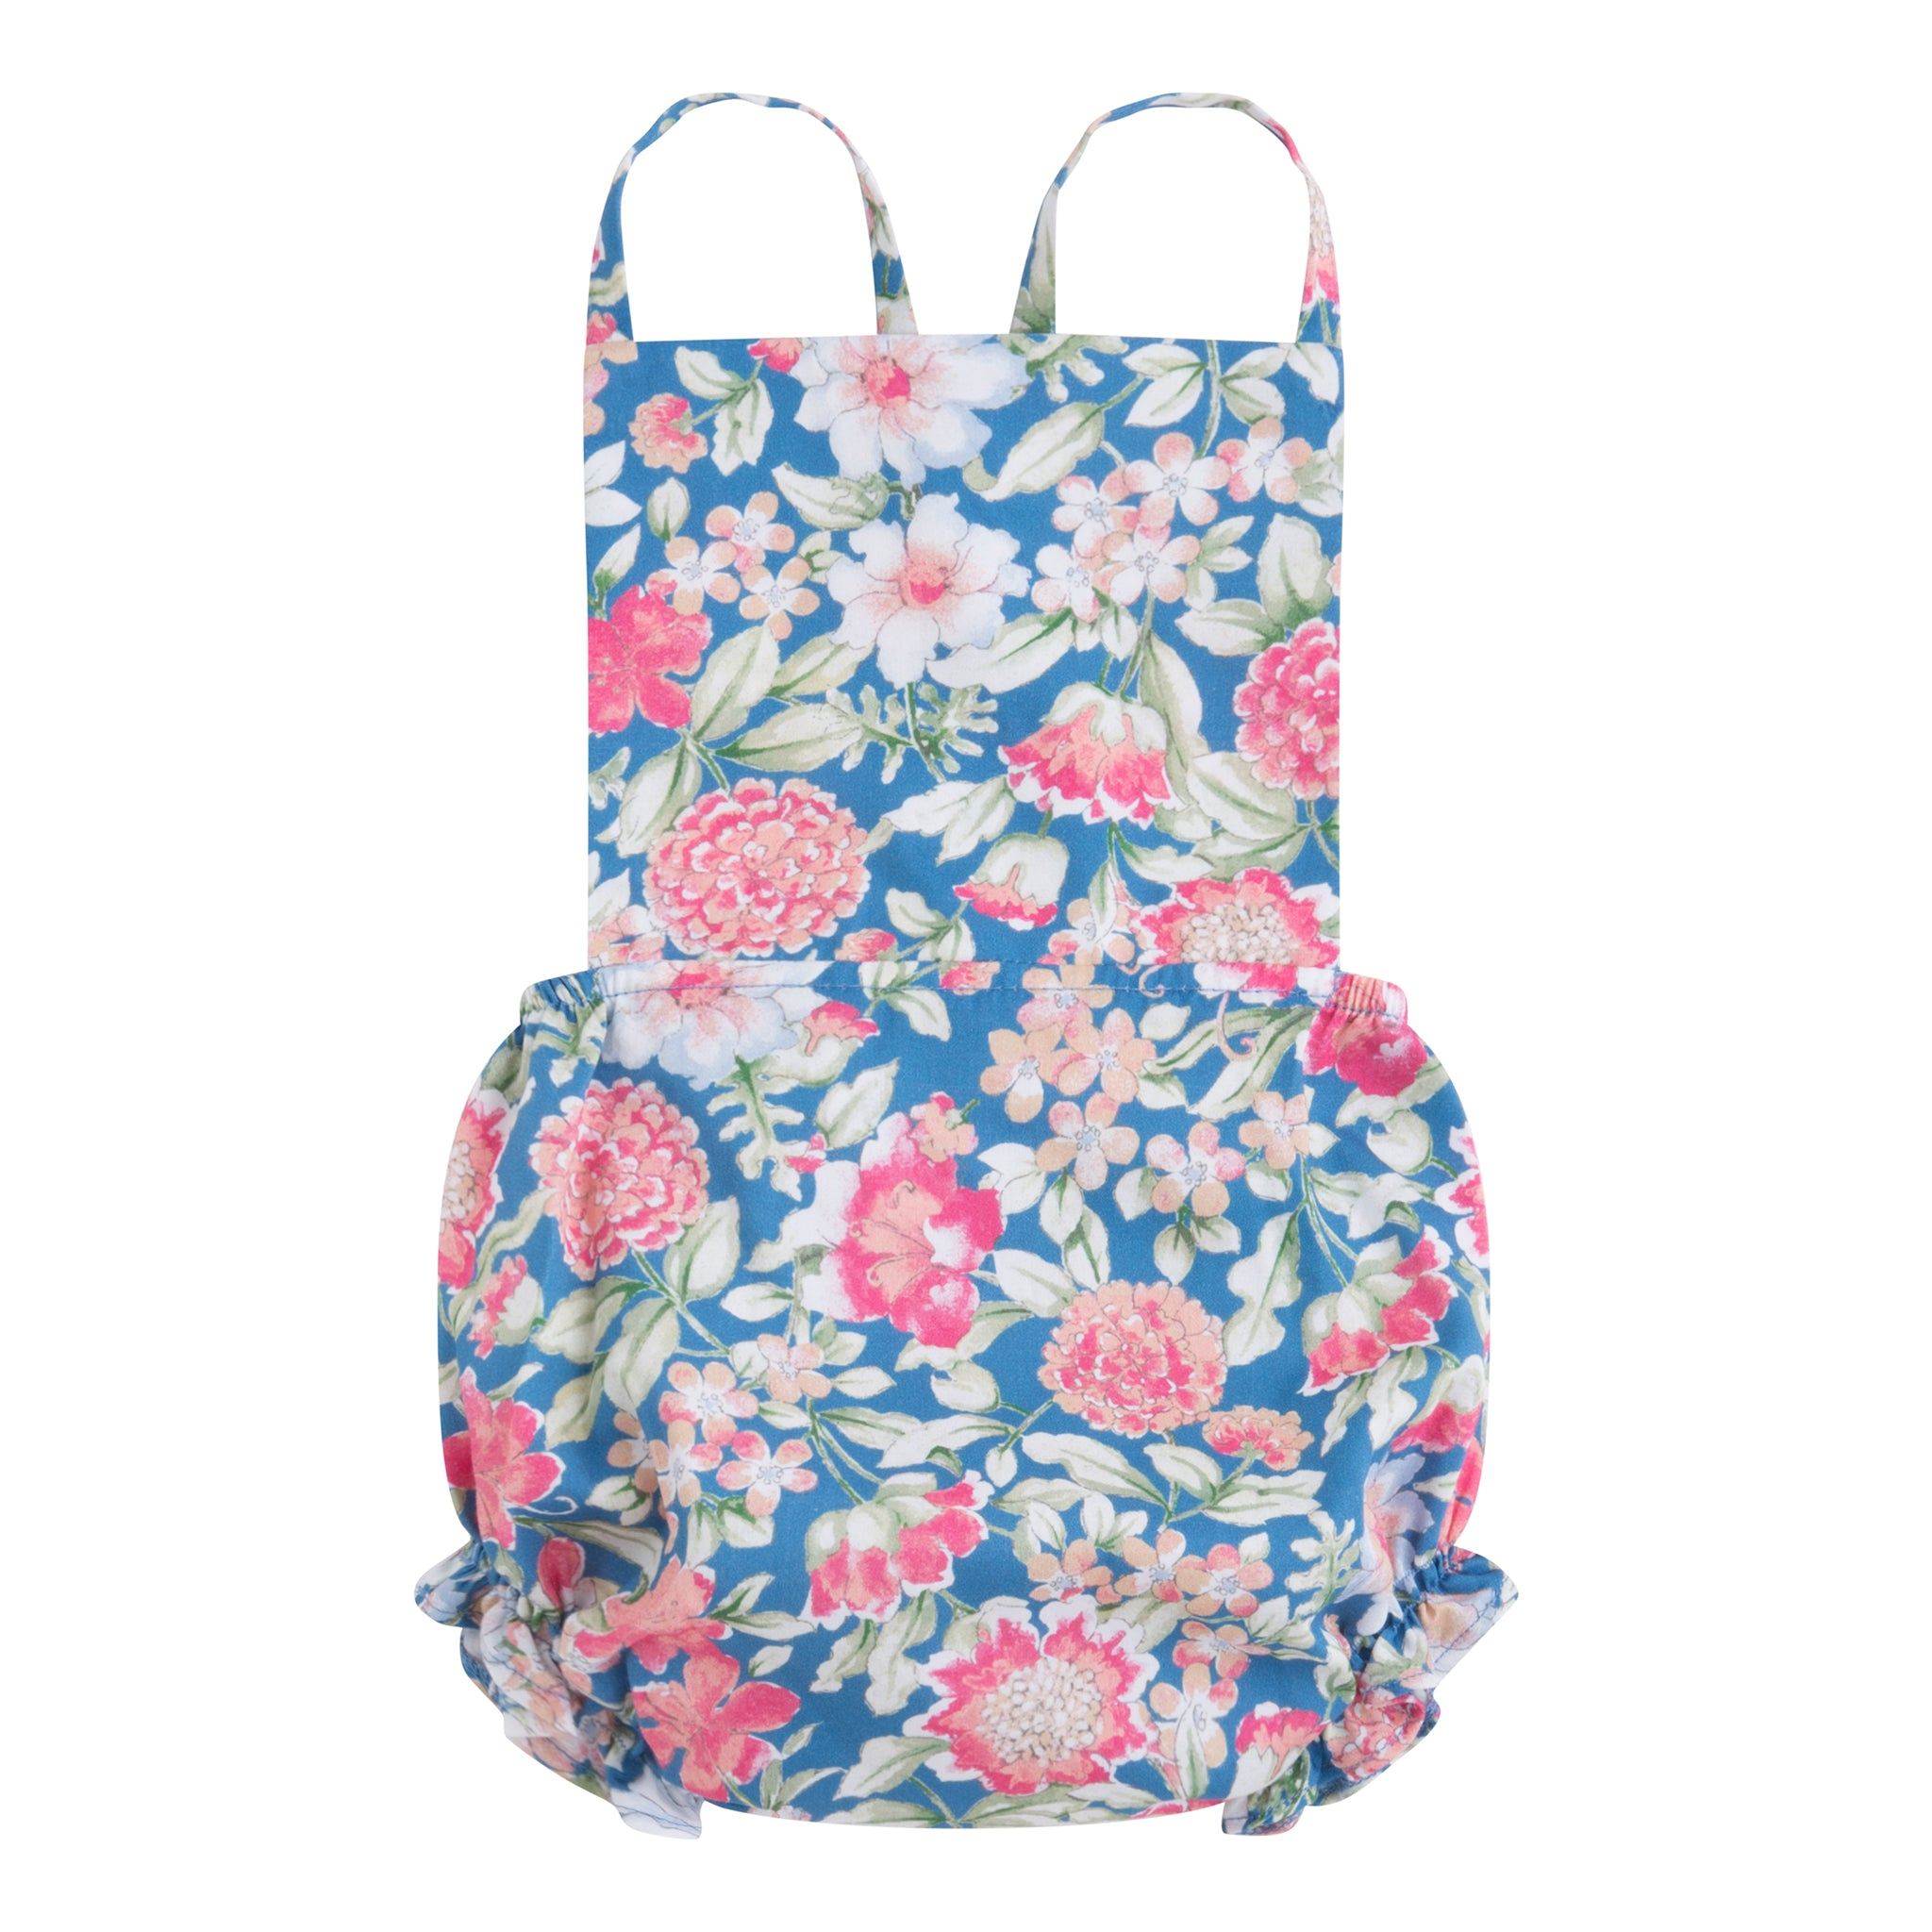 Flor Grecia Otto Playsuit baby girl floral print romper